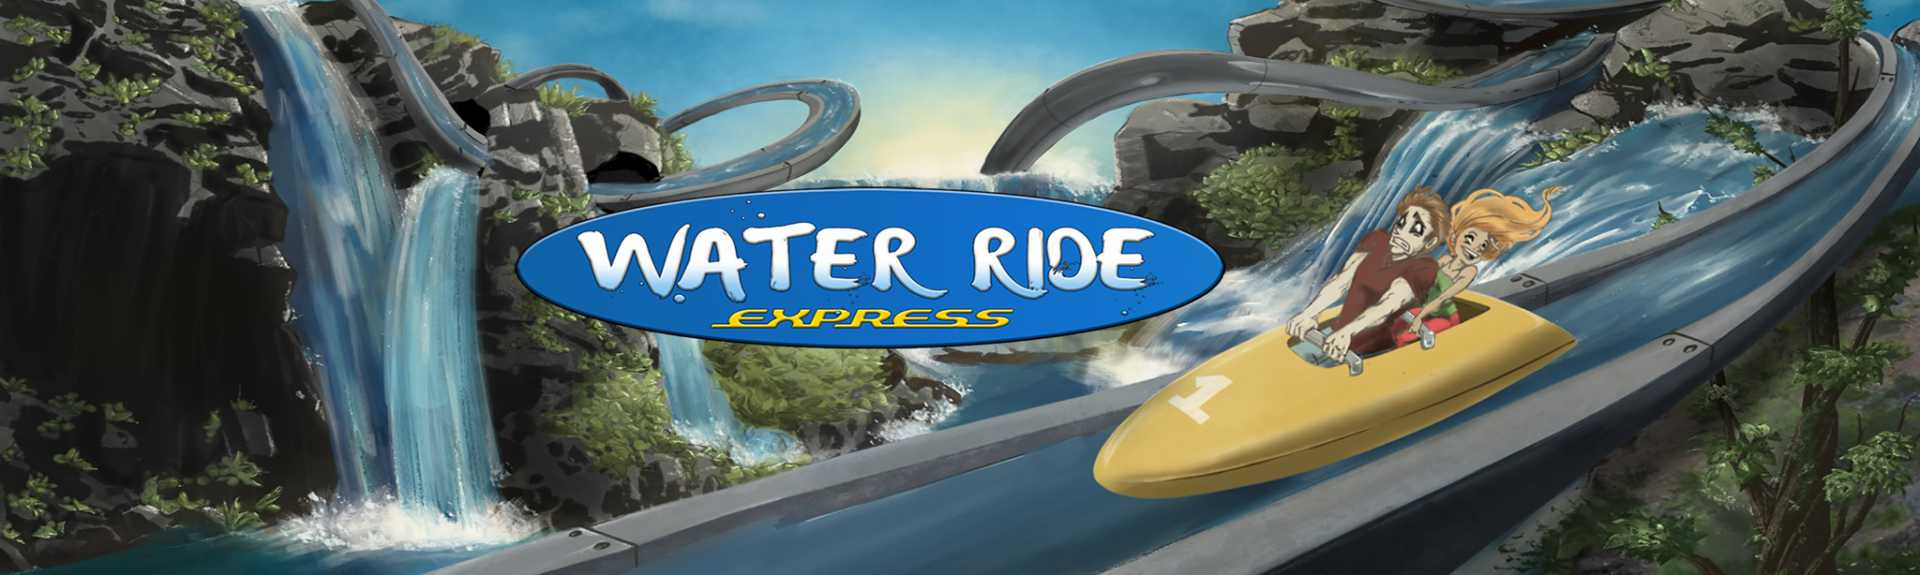 Water Ride Express